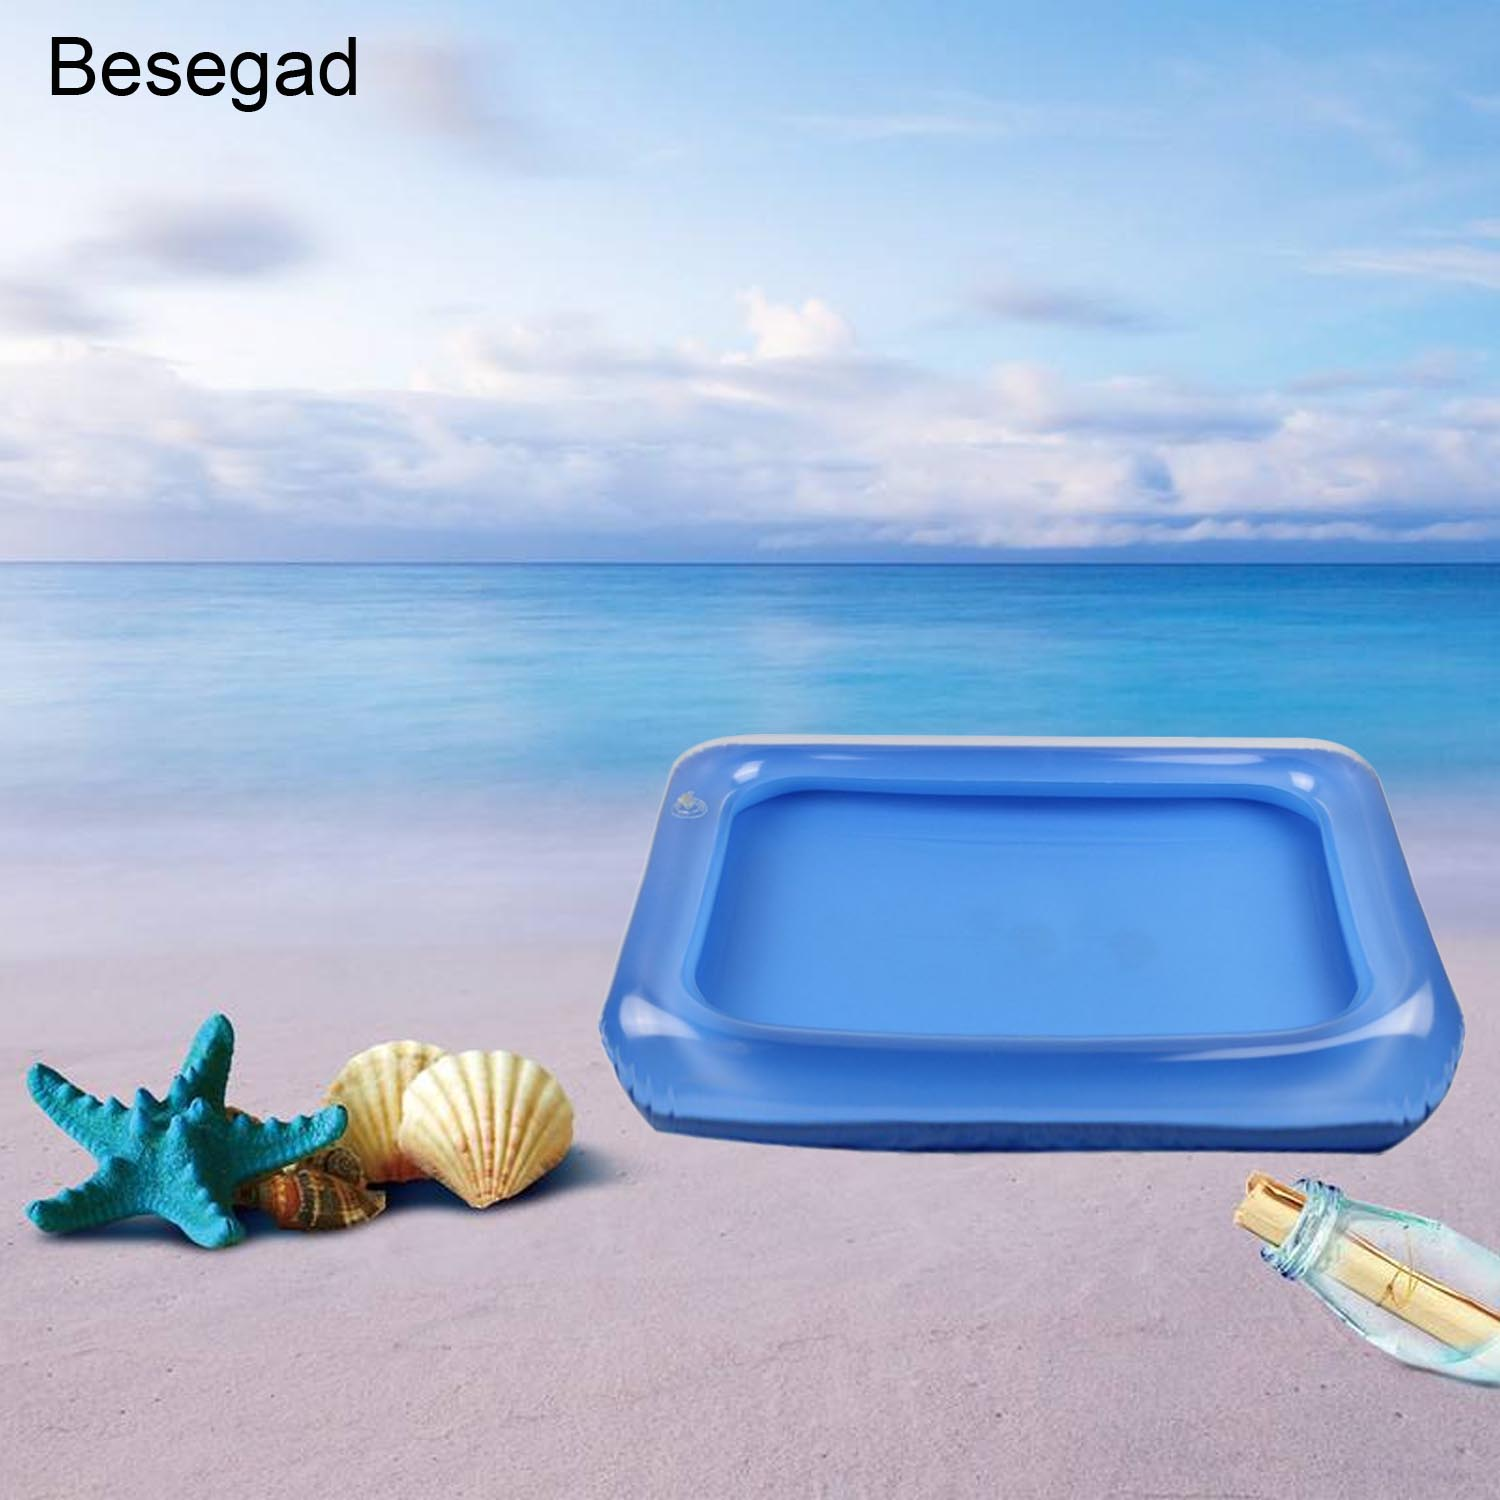 Besegad Child Beach Toy Portable Inflatable Sandbox Moldable Play Sand Tray For Kids Baby Children Playing Sand Toy Random Color